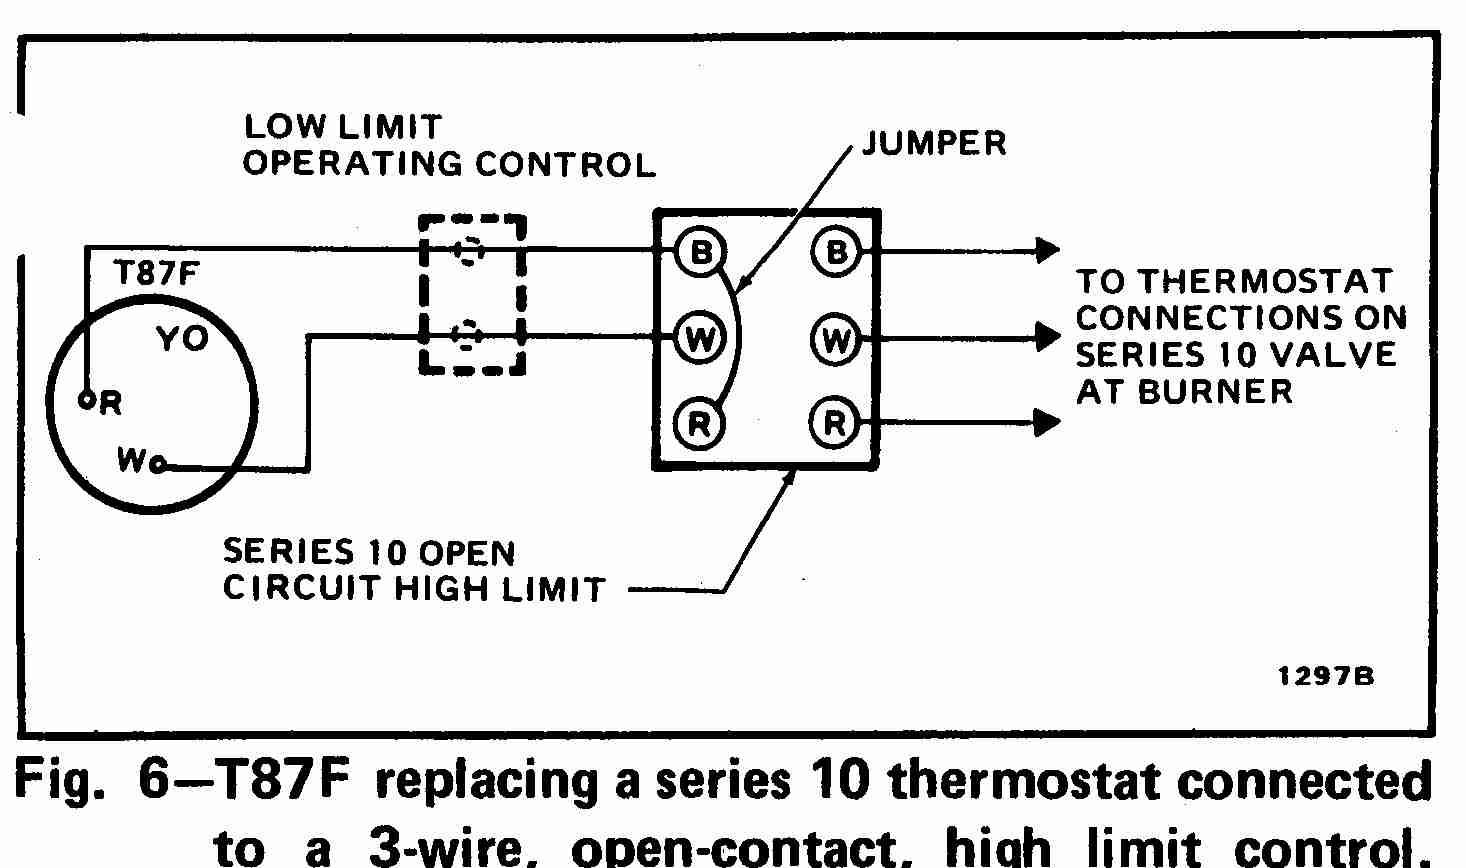 TT_T87F_0002_3WHL_DJF room thermostat wiring diagrams for hvac systems heat cool thermostat wiring diagram at readyjetset.co